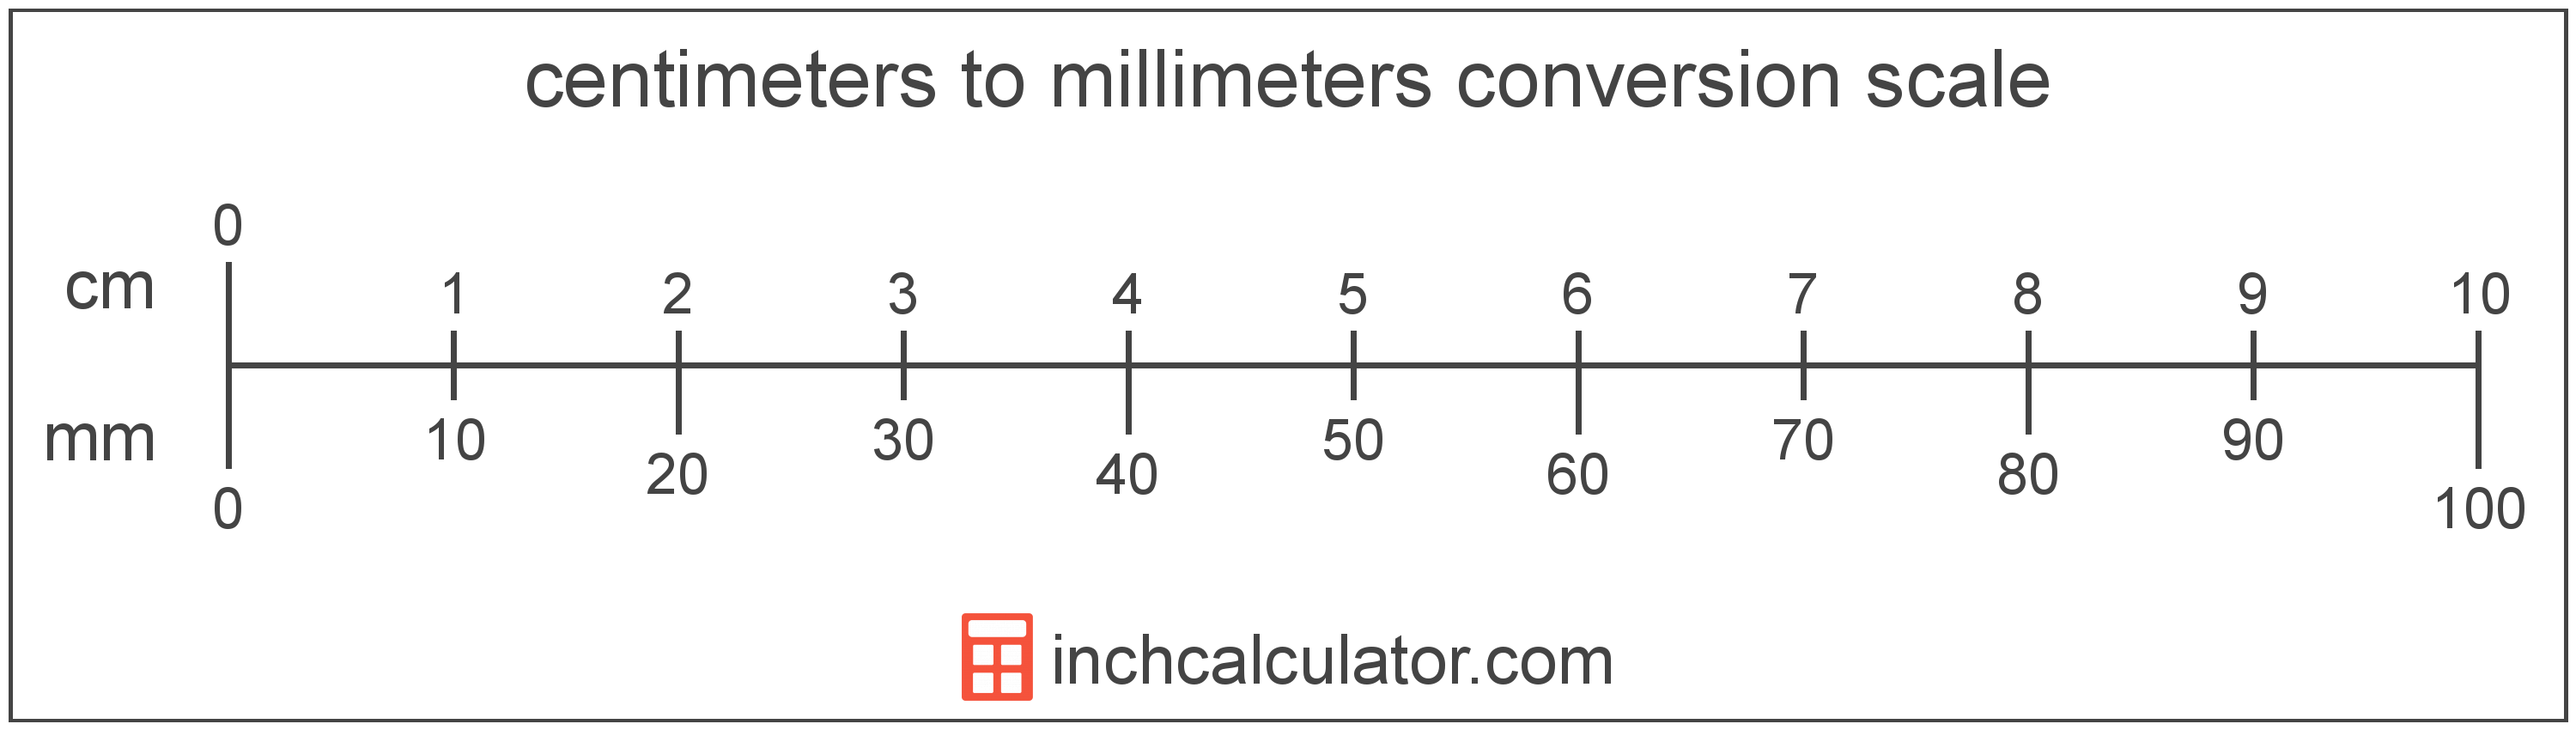 image regarding Centimetre Ruler Printable titled Switch Centimeters toward Millimeters - (cm in direction of mm)